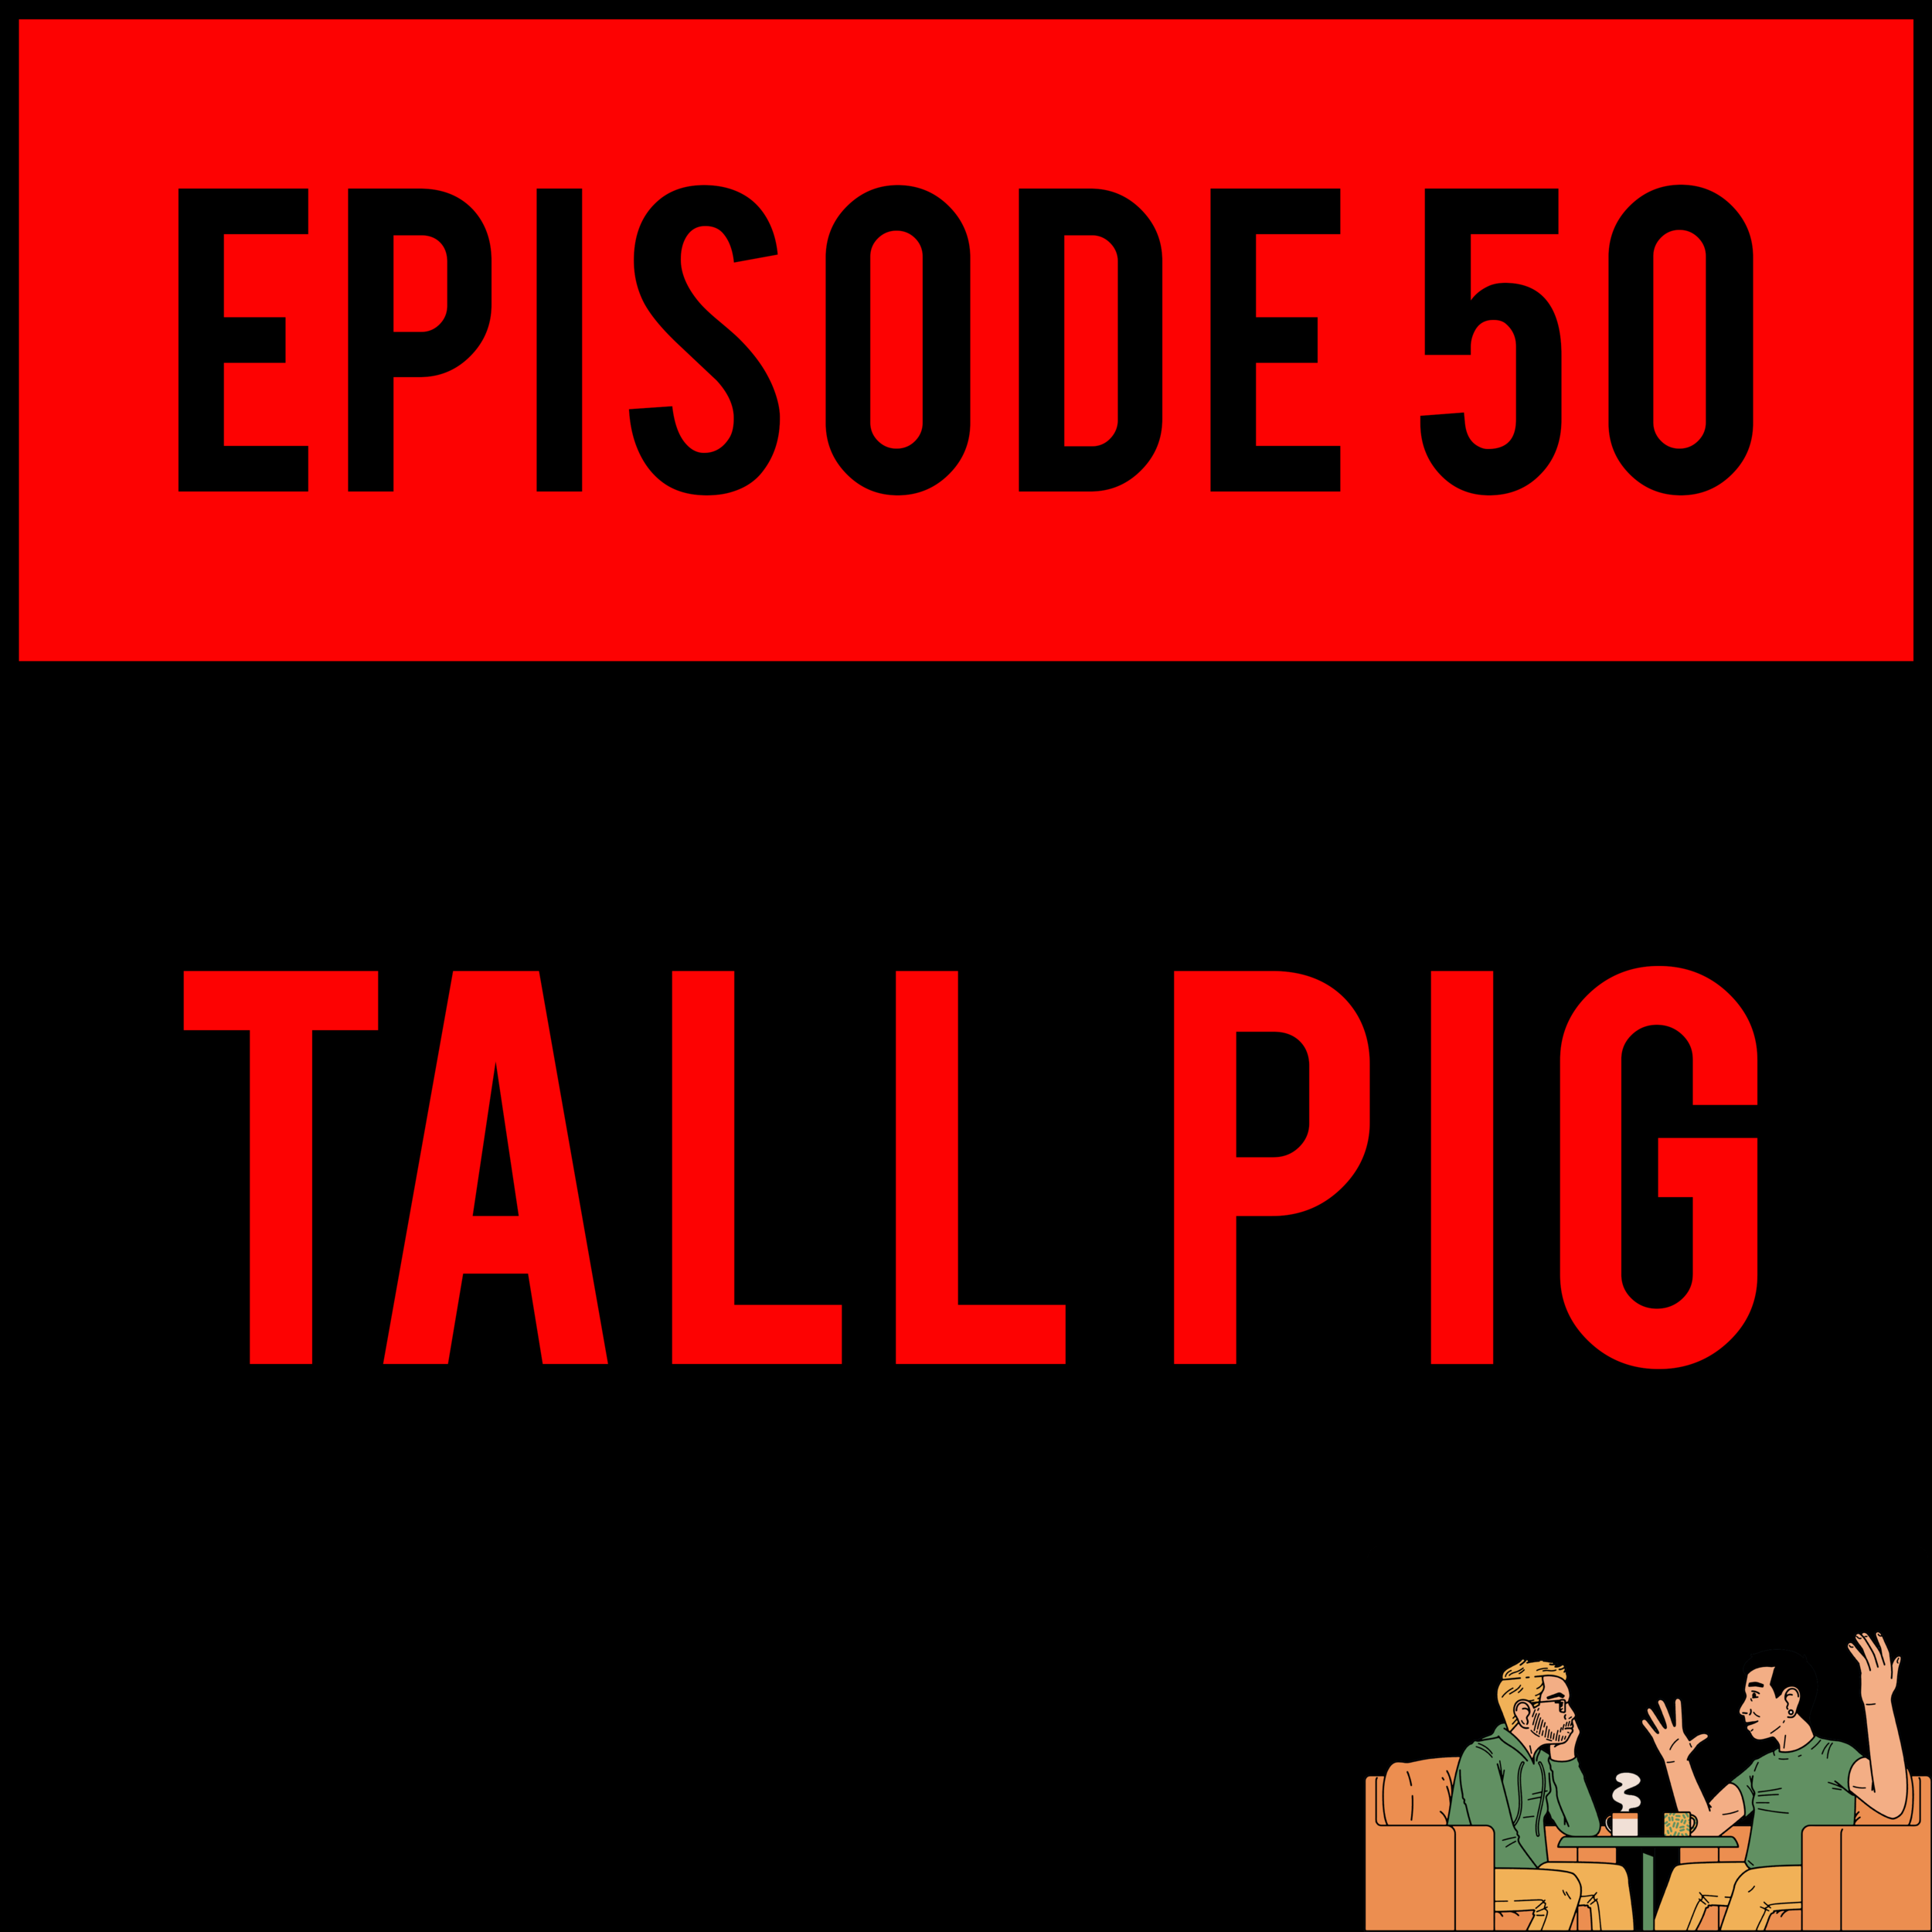 EPISODE 50 - Guess what? Alex throws up,Milkman Dannycan't control his nasty ass stomach noises in front of pretty girls and Justyn is the only one NOT hungover. Also- what's a Tall Pig? You'll see. TALL PIG - EPISODE 50 might make you throw up, too. It's like audio VR.